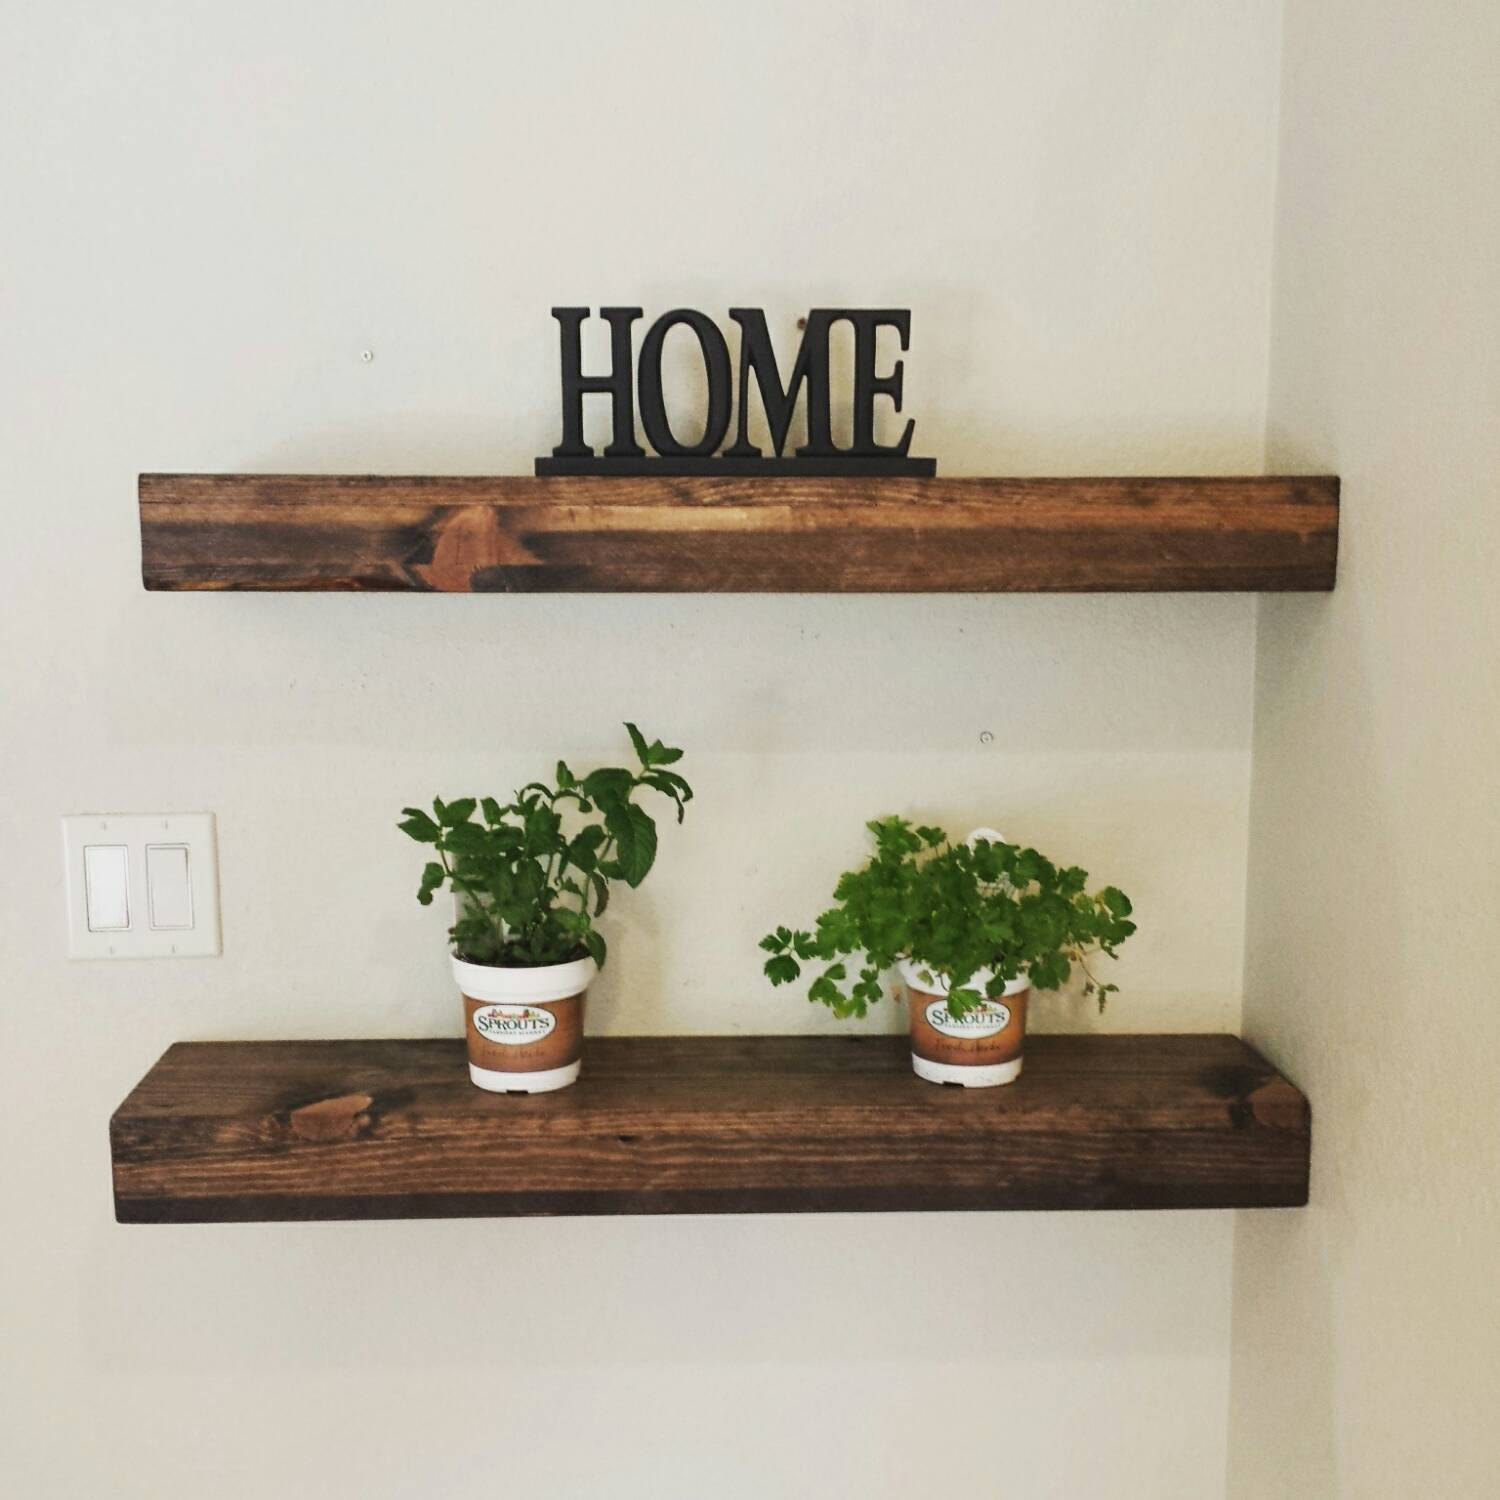 handmade rustic and reclaimed wood floating shelves mantel etsy fullxfull kitchen metal brackets book shelving system damage free wall hanging computer desk distressed shelf mount